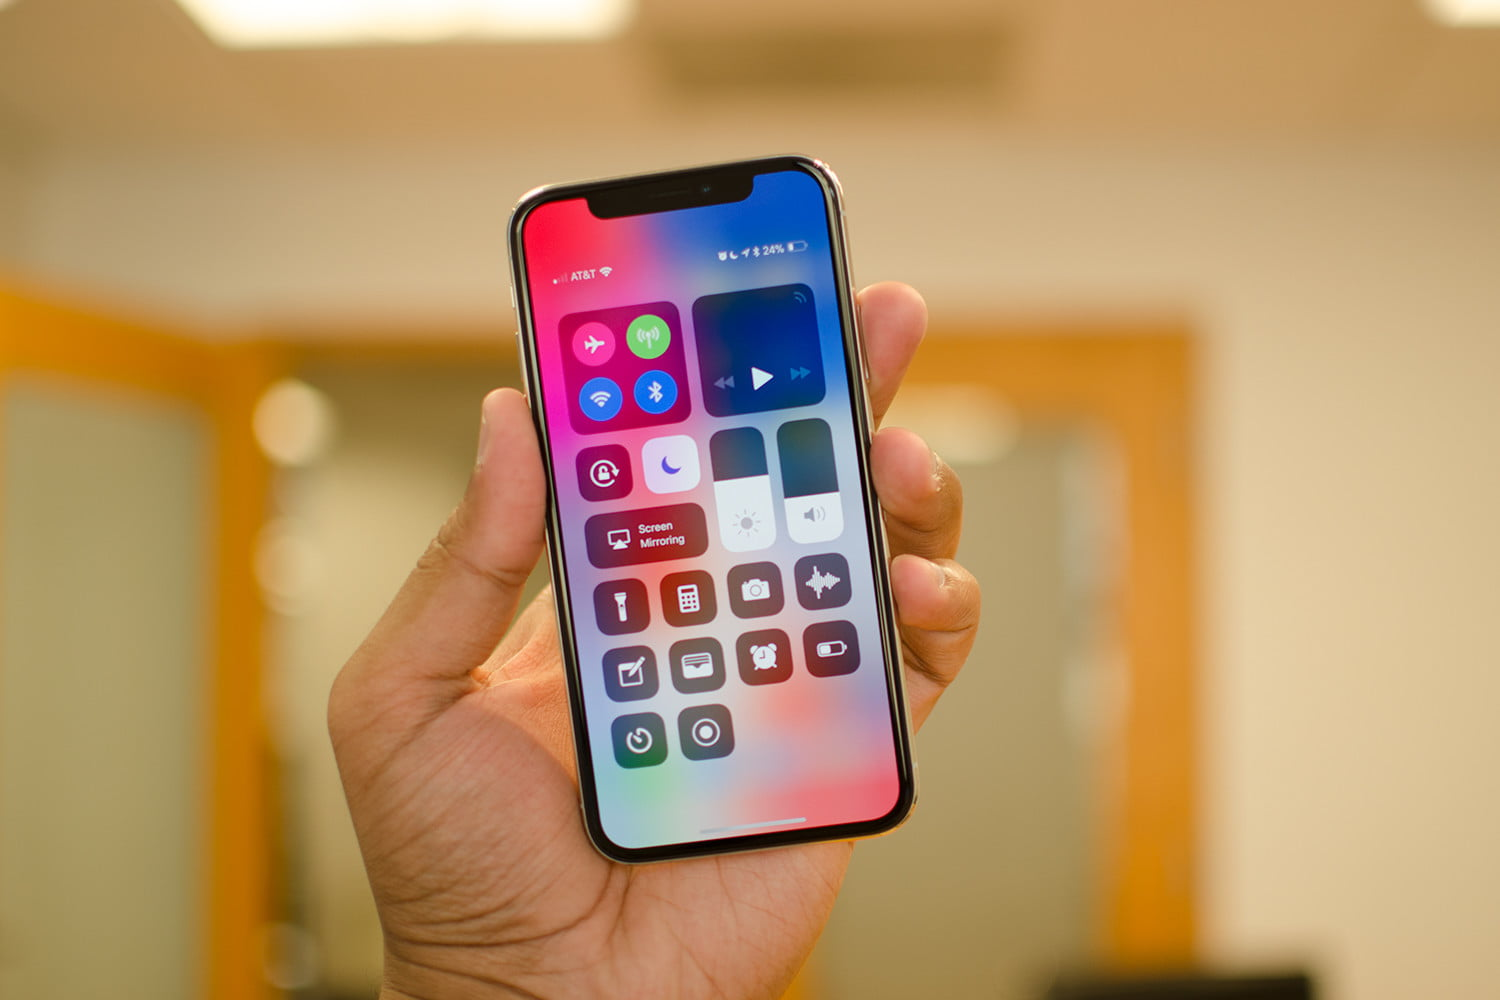 Sprint Holds Flash Sale, Offers iPhone X For Only $5 Per